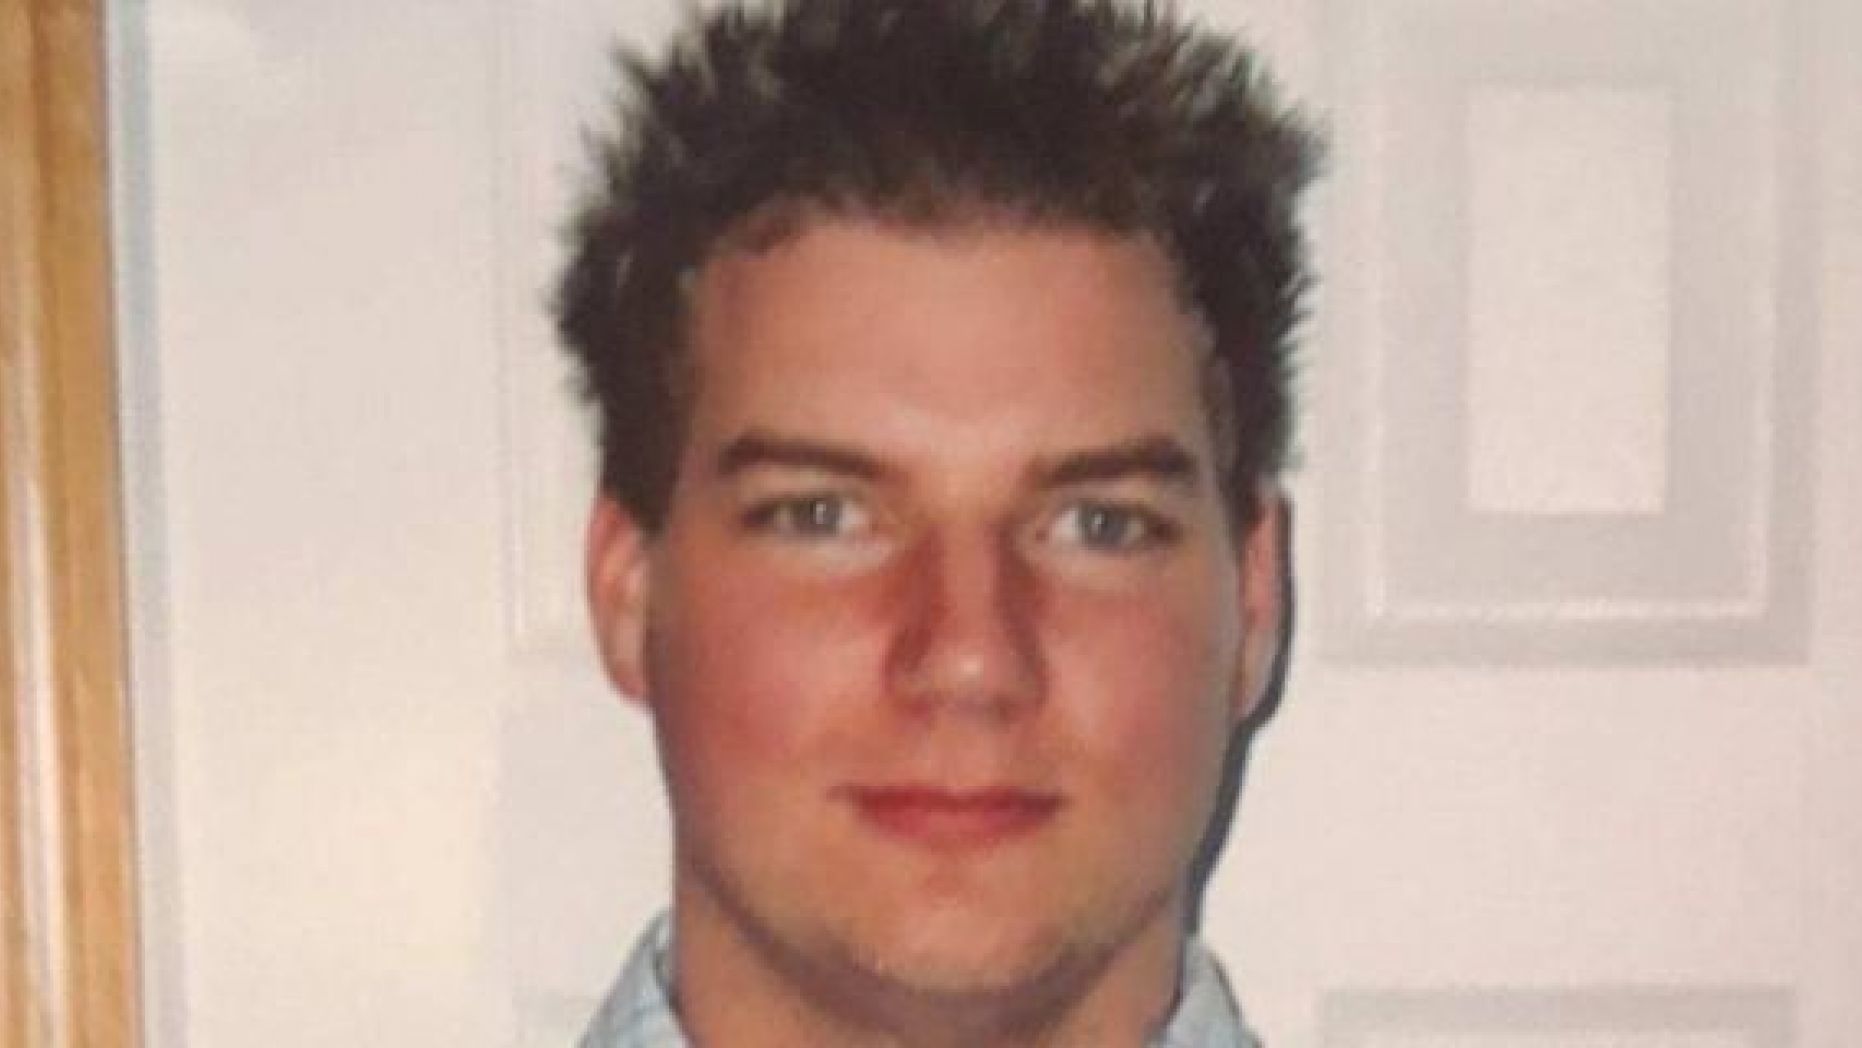 Robert Lloyd Schellenberg, 36, was sentenced to death for drug smuggling. His sentencing came during a one-day retrial on Monday.